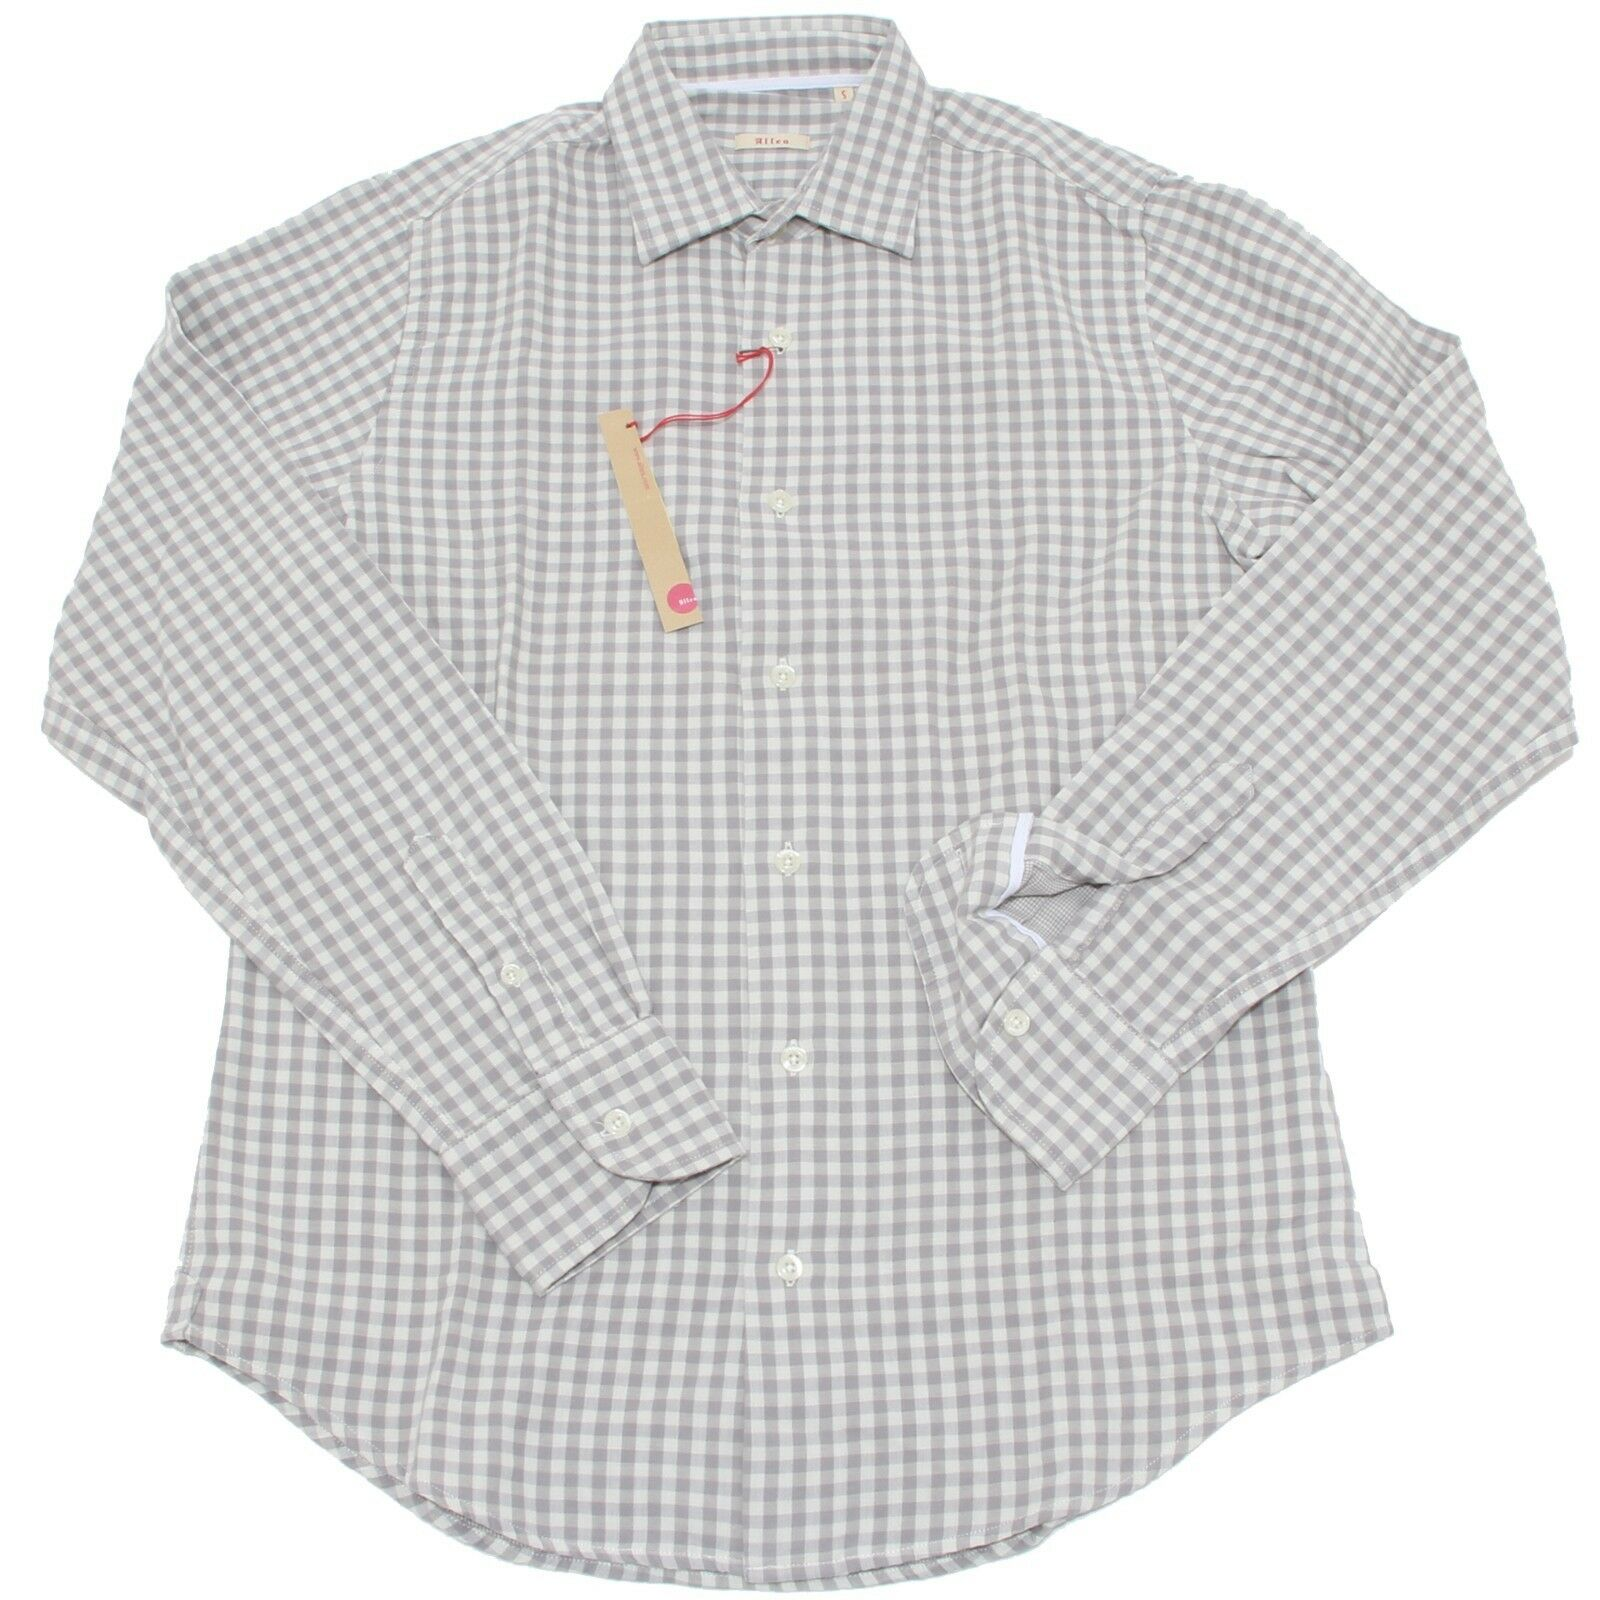 0157 camicia ALTEA uomo shirts Uomo quadretto